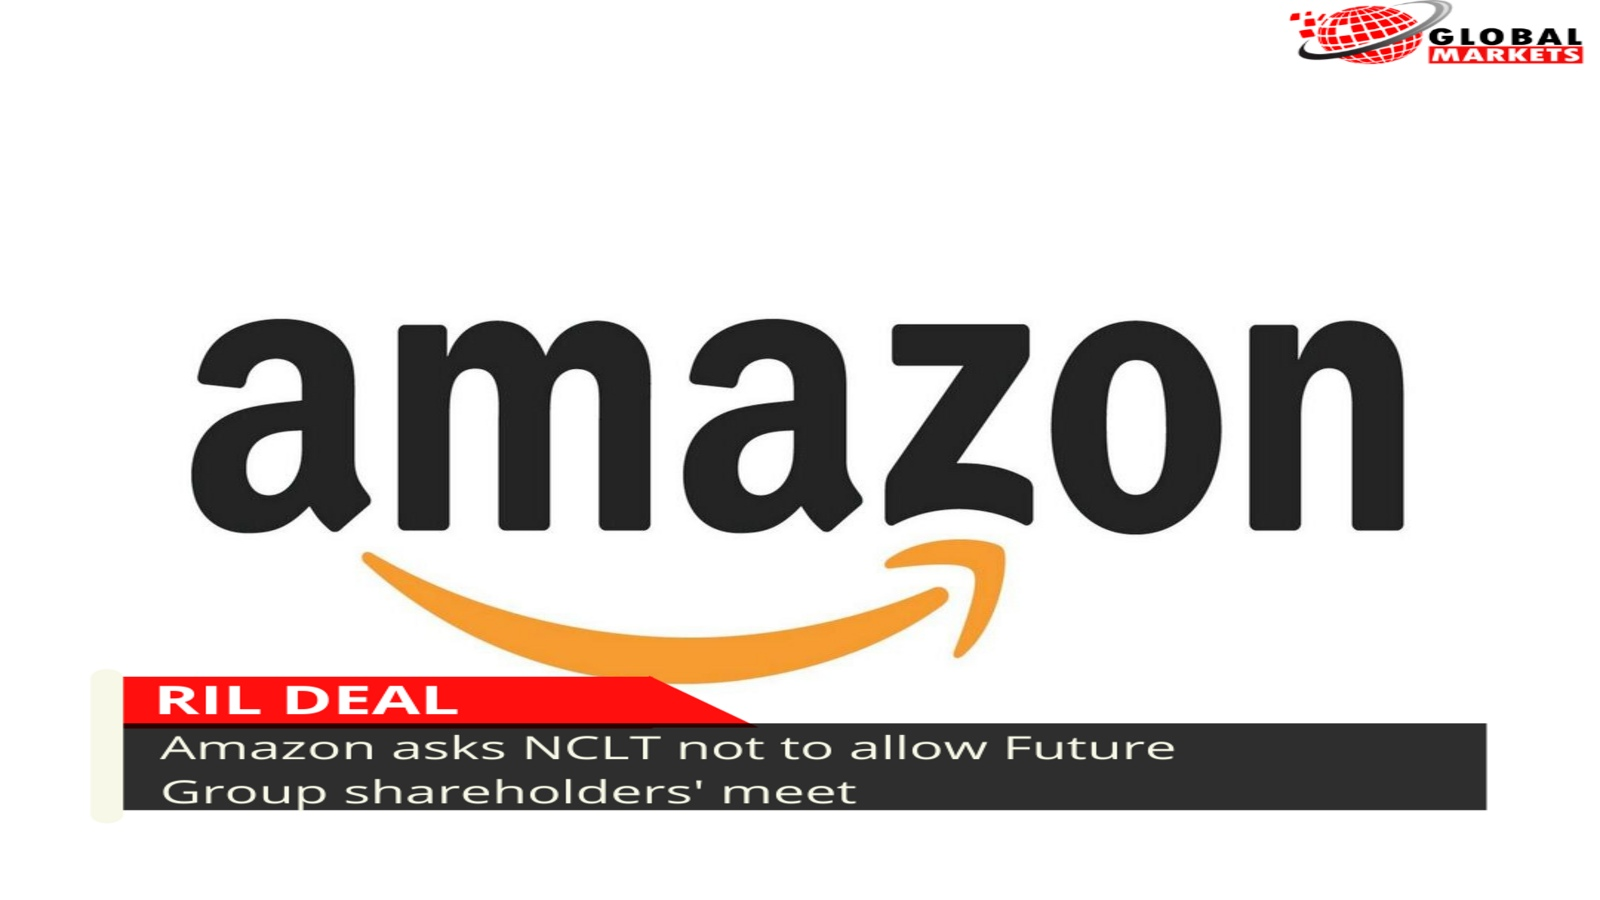 RIL deal: Amazon asks NCLT not to allow Future Group shareholders' meet